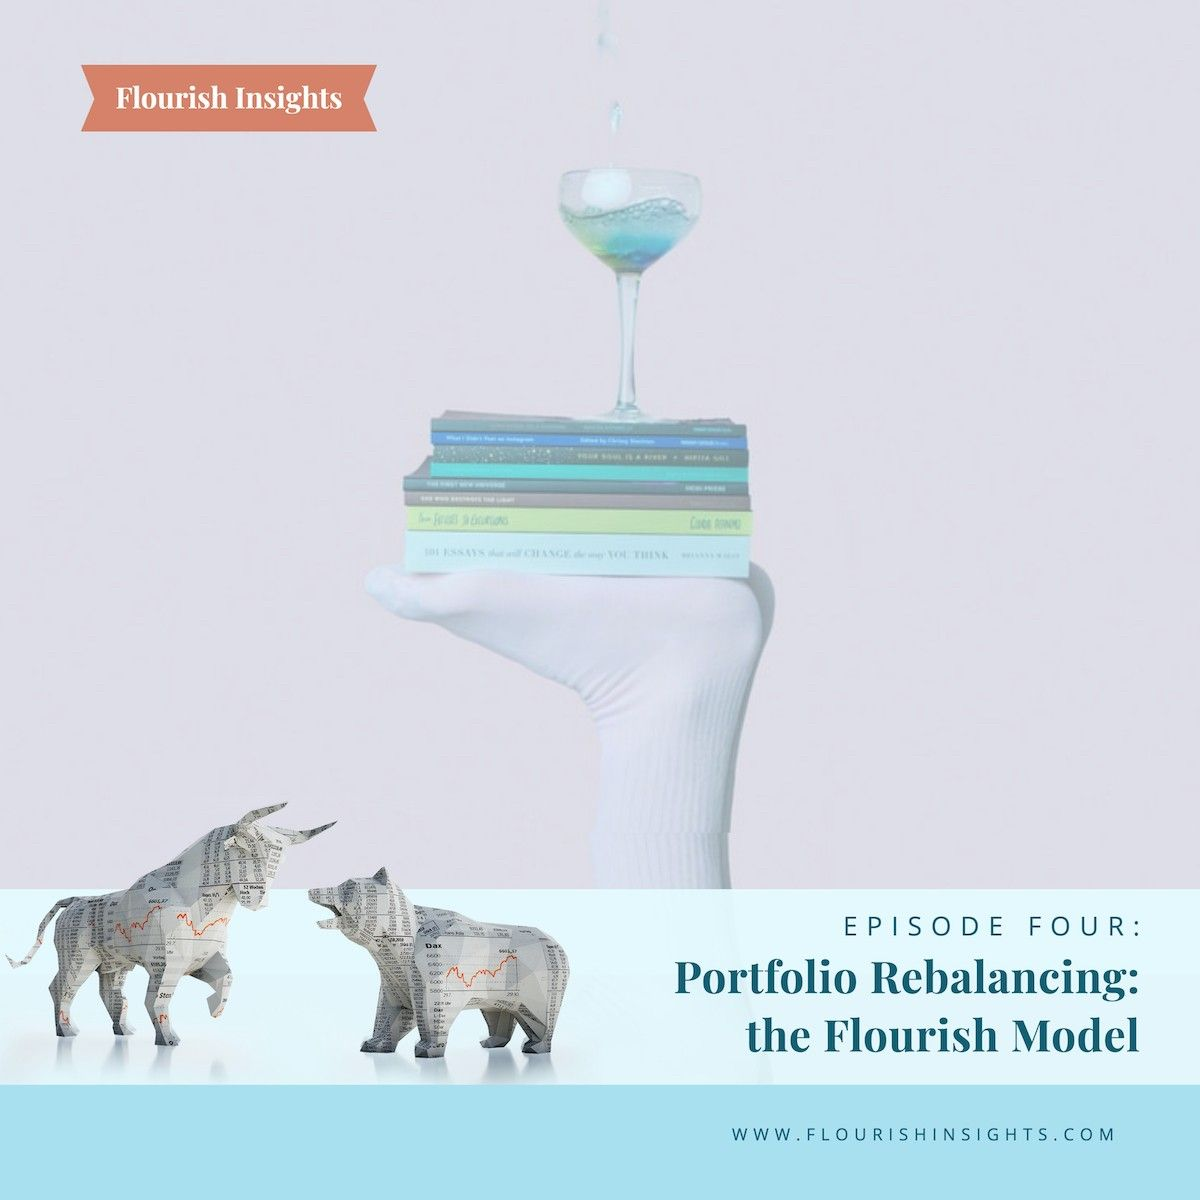 Portfolio Rebalancing: The Flourish Model